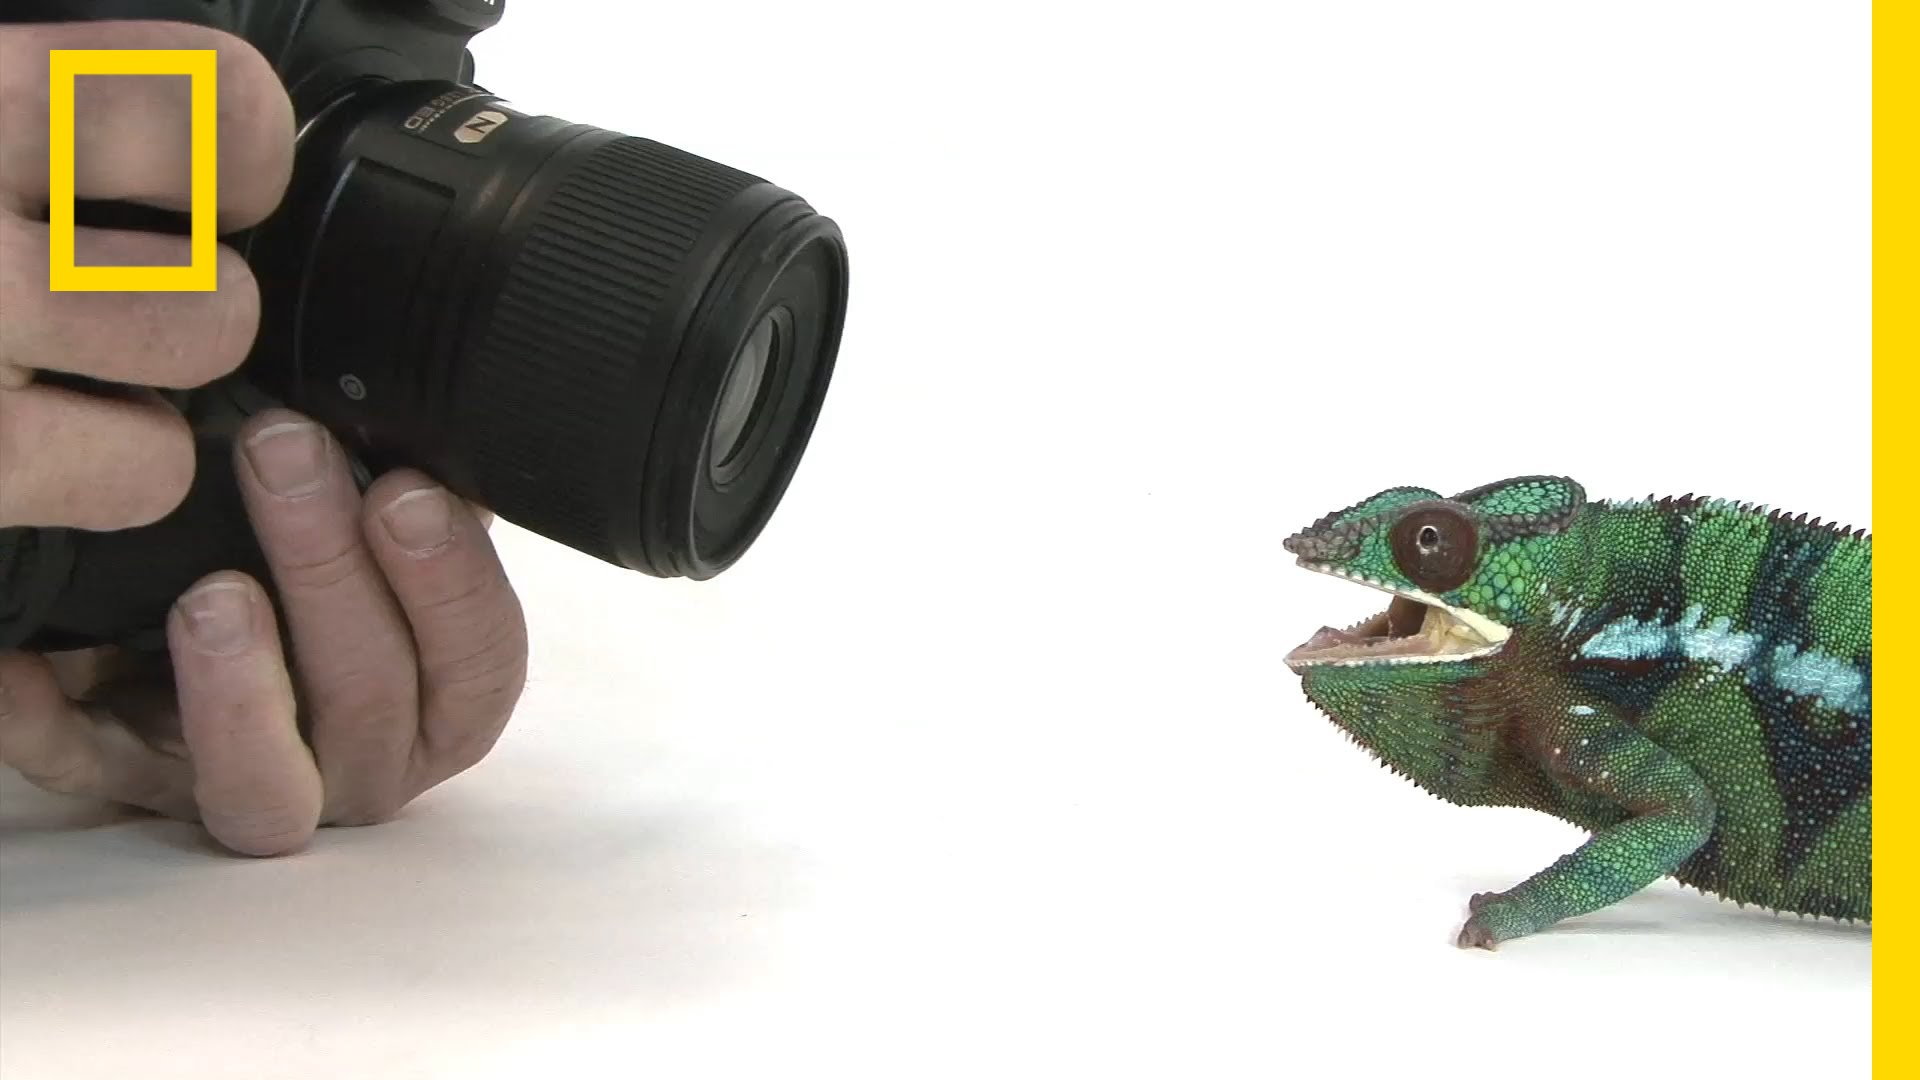 How Hard is it to Photography 12000 animals?